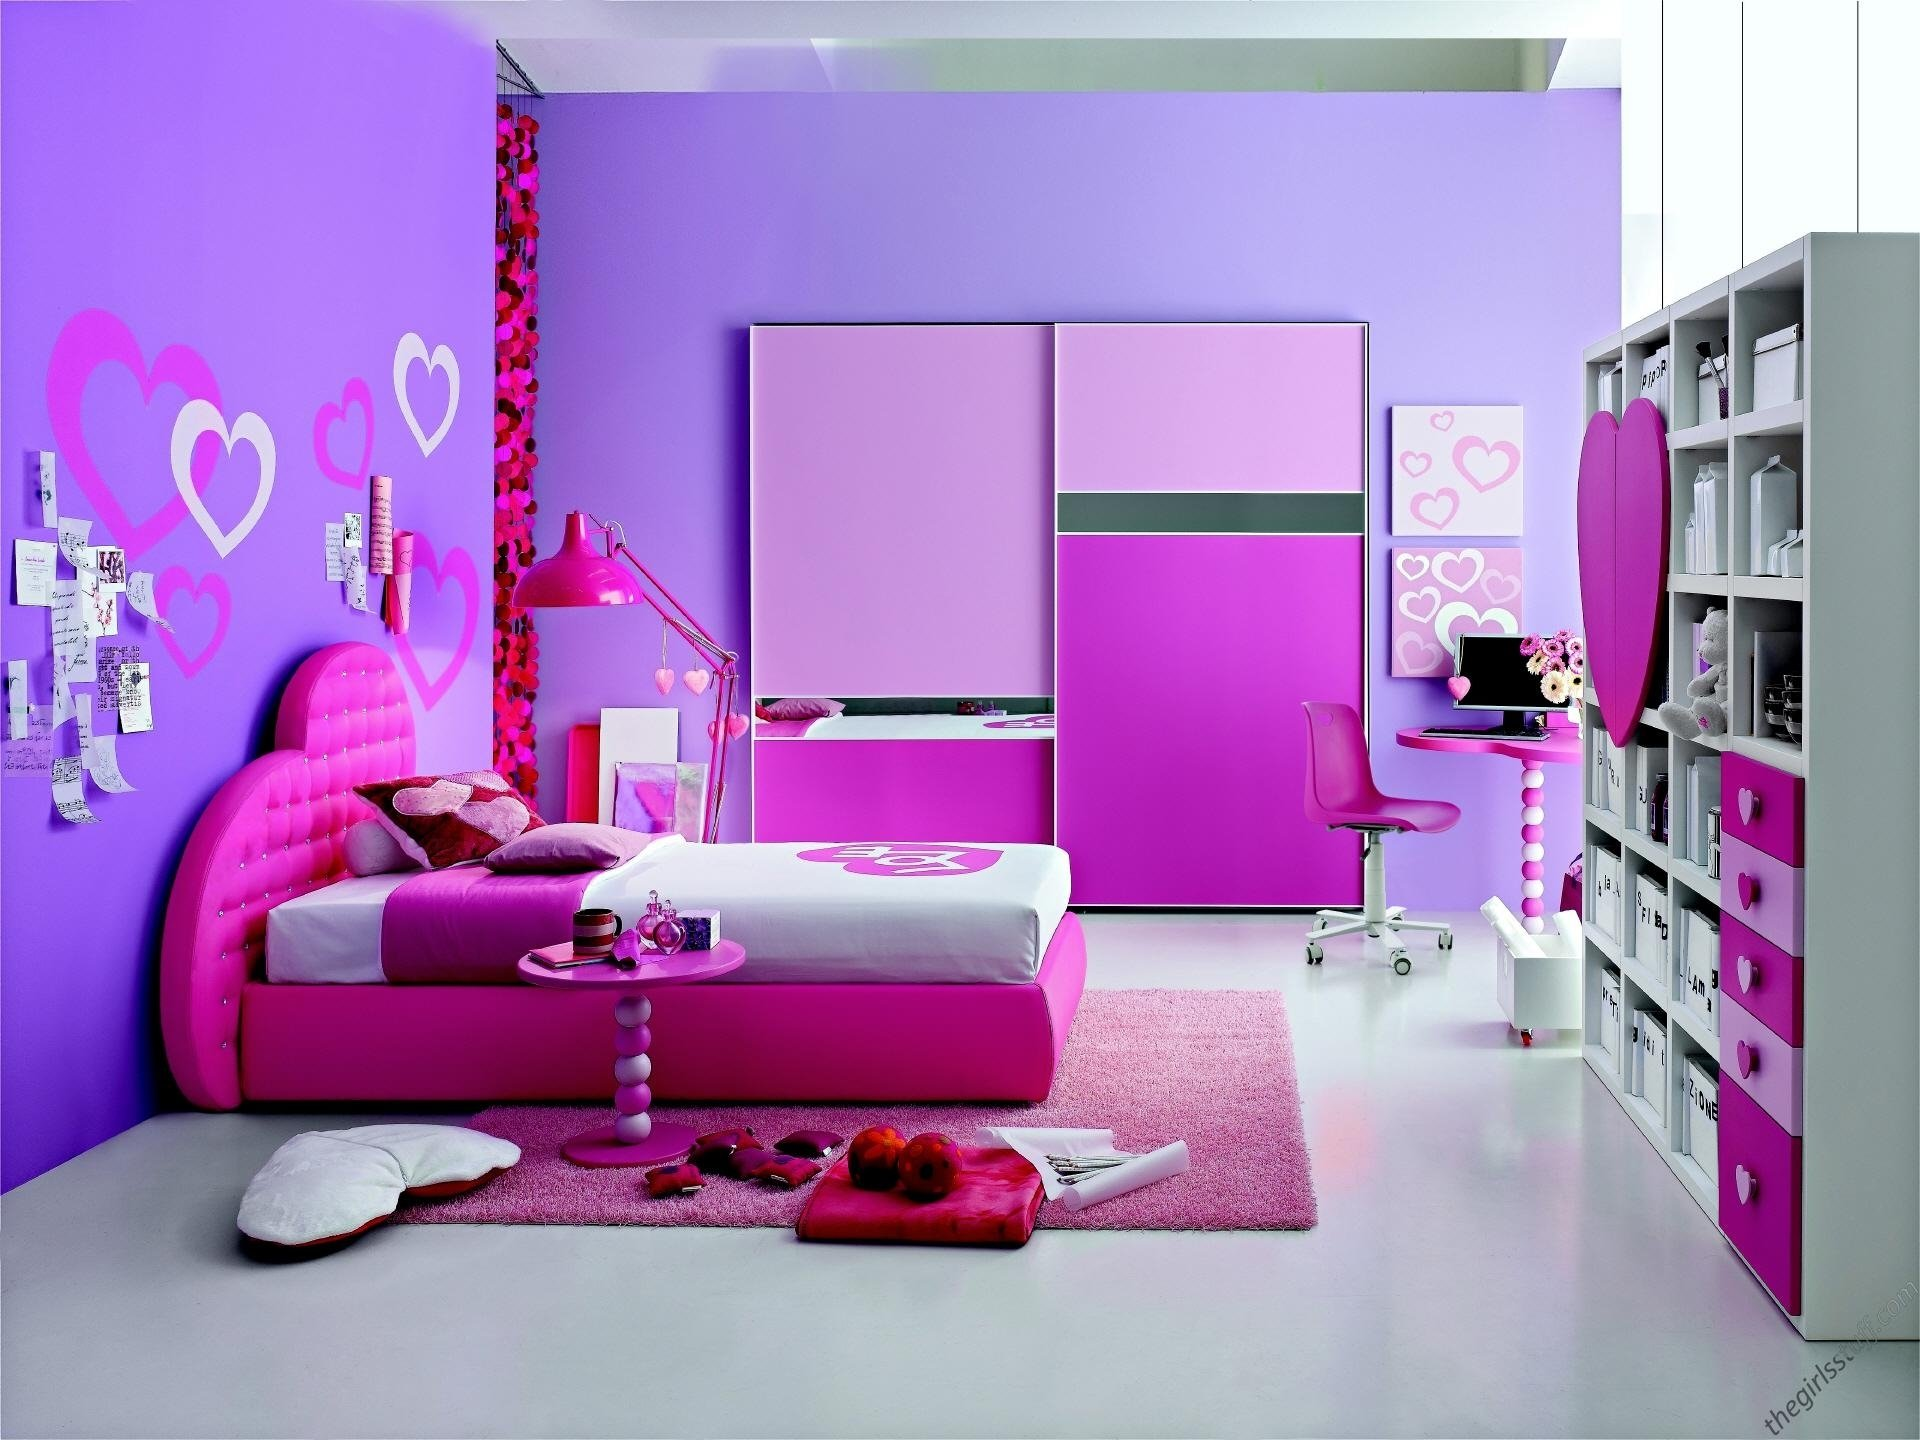 10 Lovely Pink And Purple Room Ideas teens room pink teenage girls room inspiration girl teenage room 2020